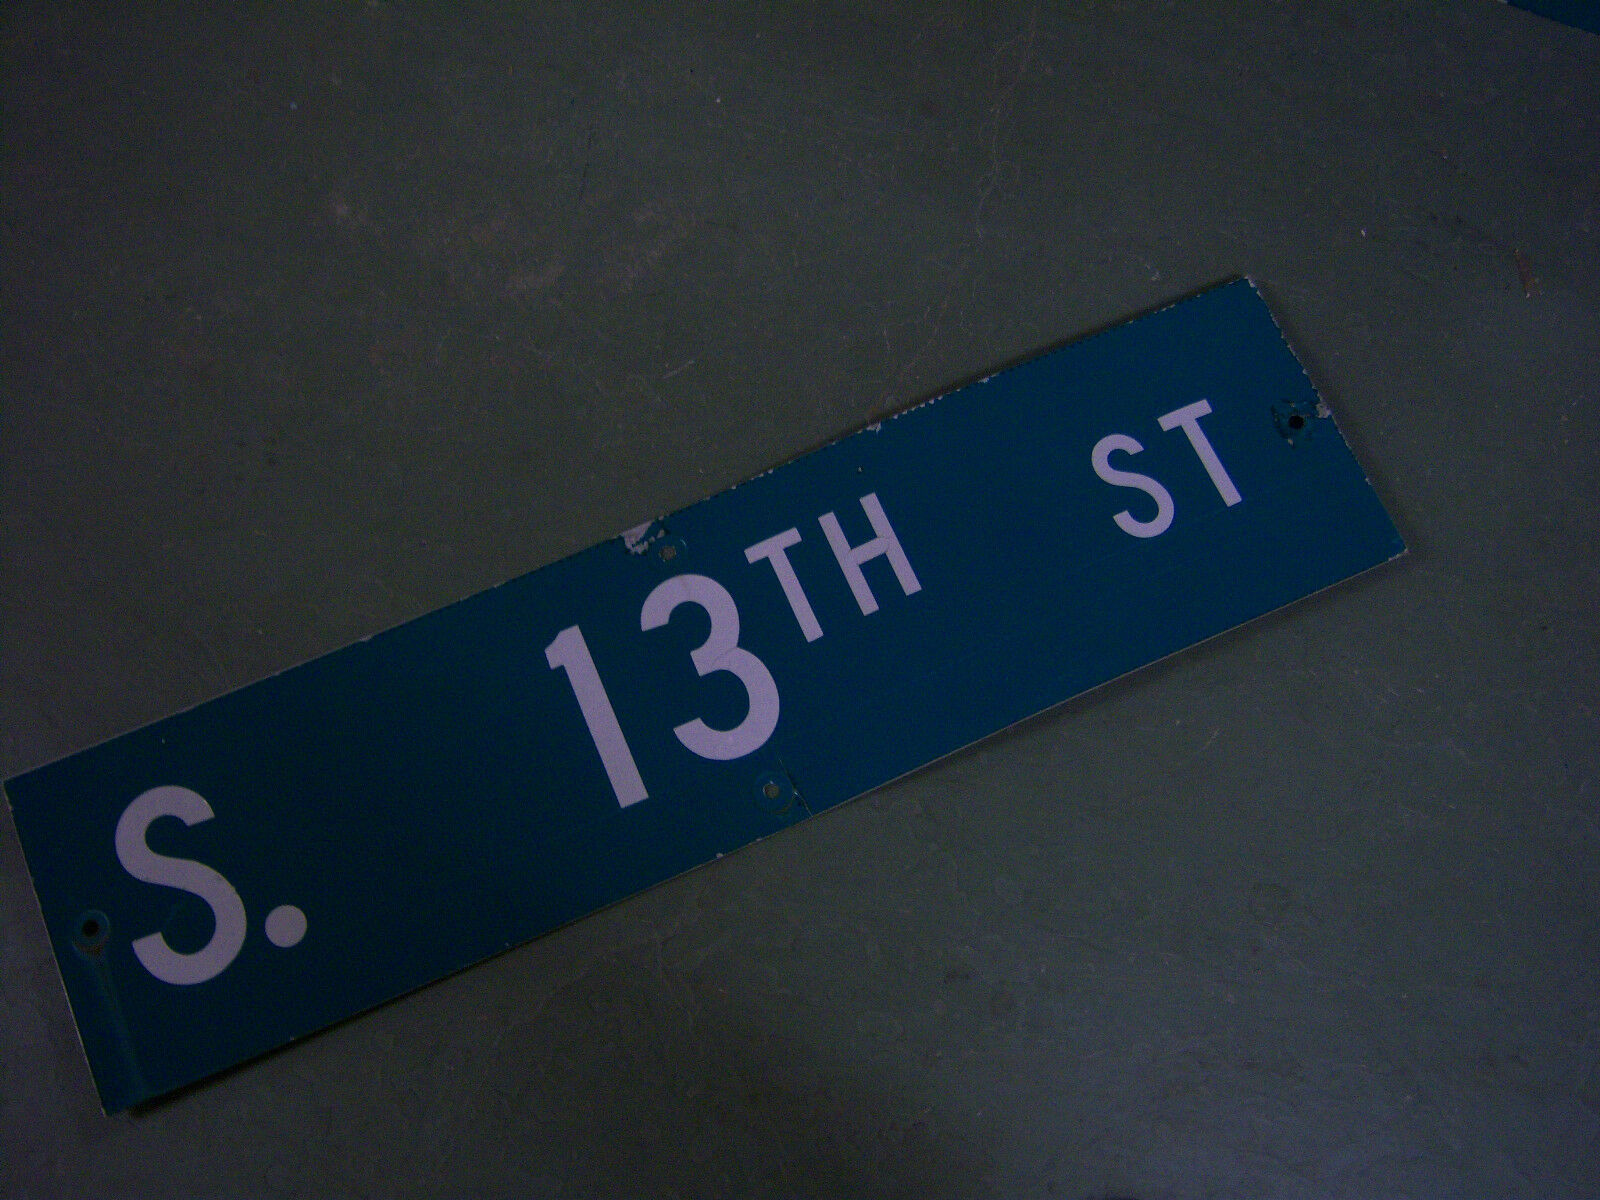 """Vintage ORIGINAL S. 13TH ST STREET SIGN 36"""" X 9"""" WHITE LETTERING ON GREEN"""